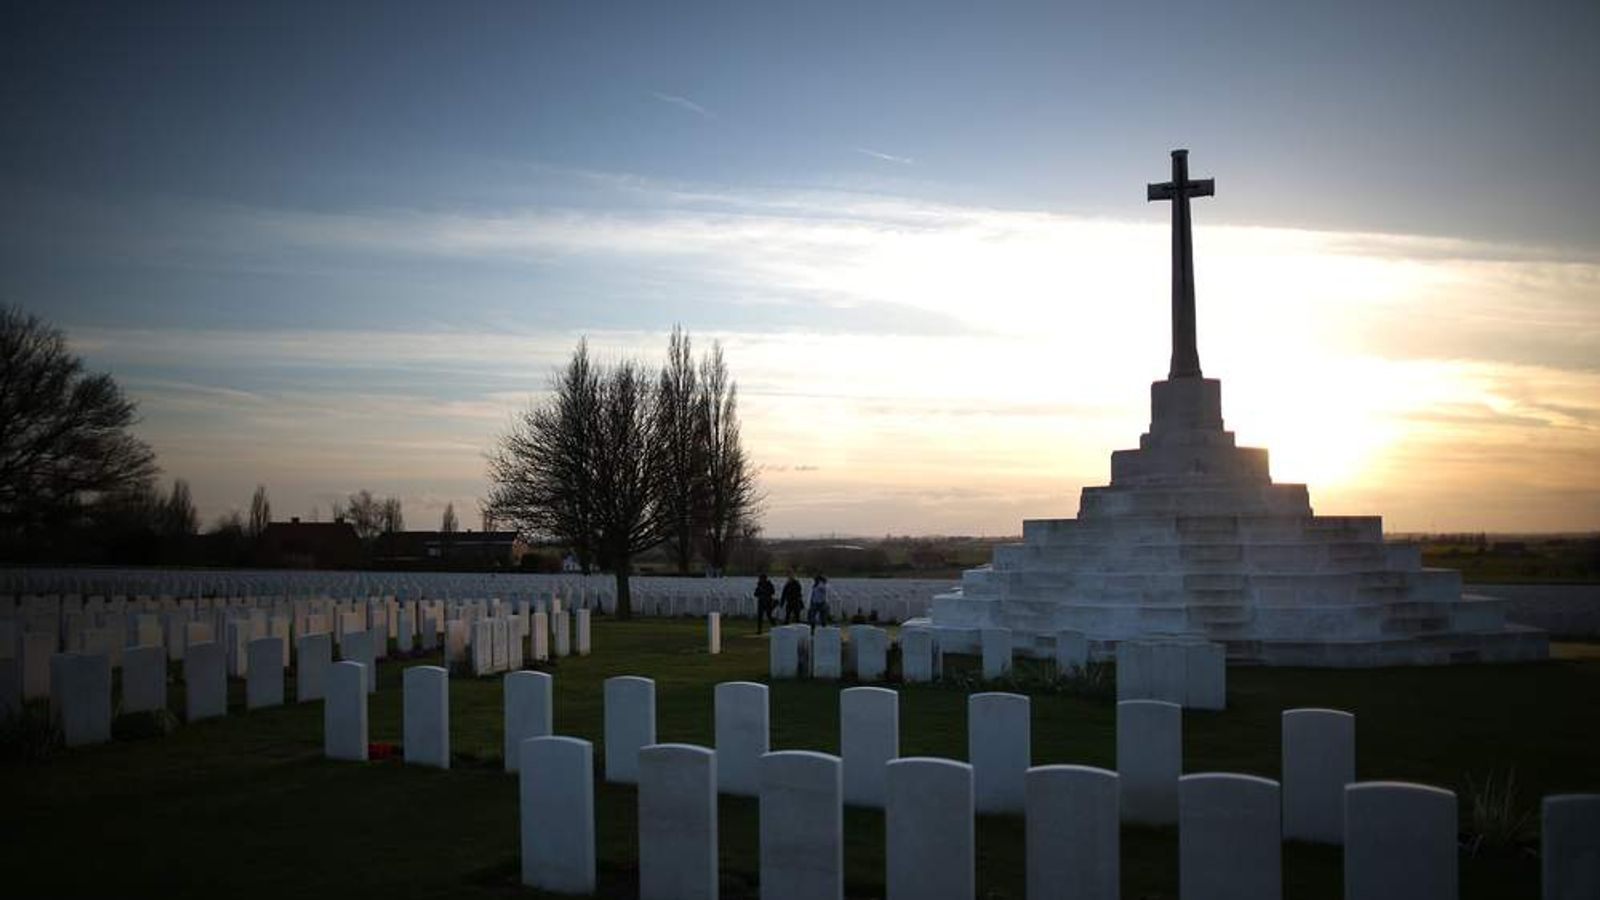 Gravestones at the Tyne Cot World War One cemetery in Belgium